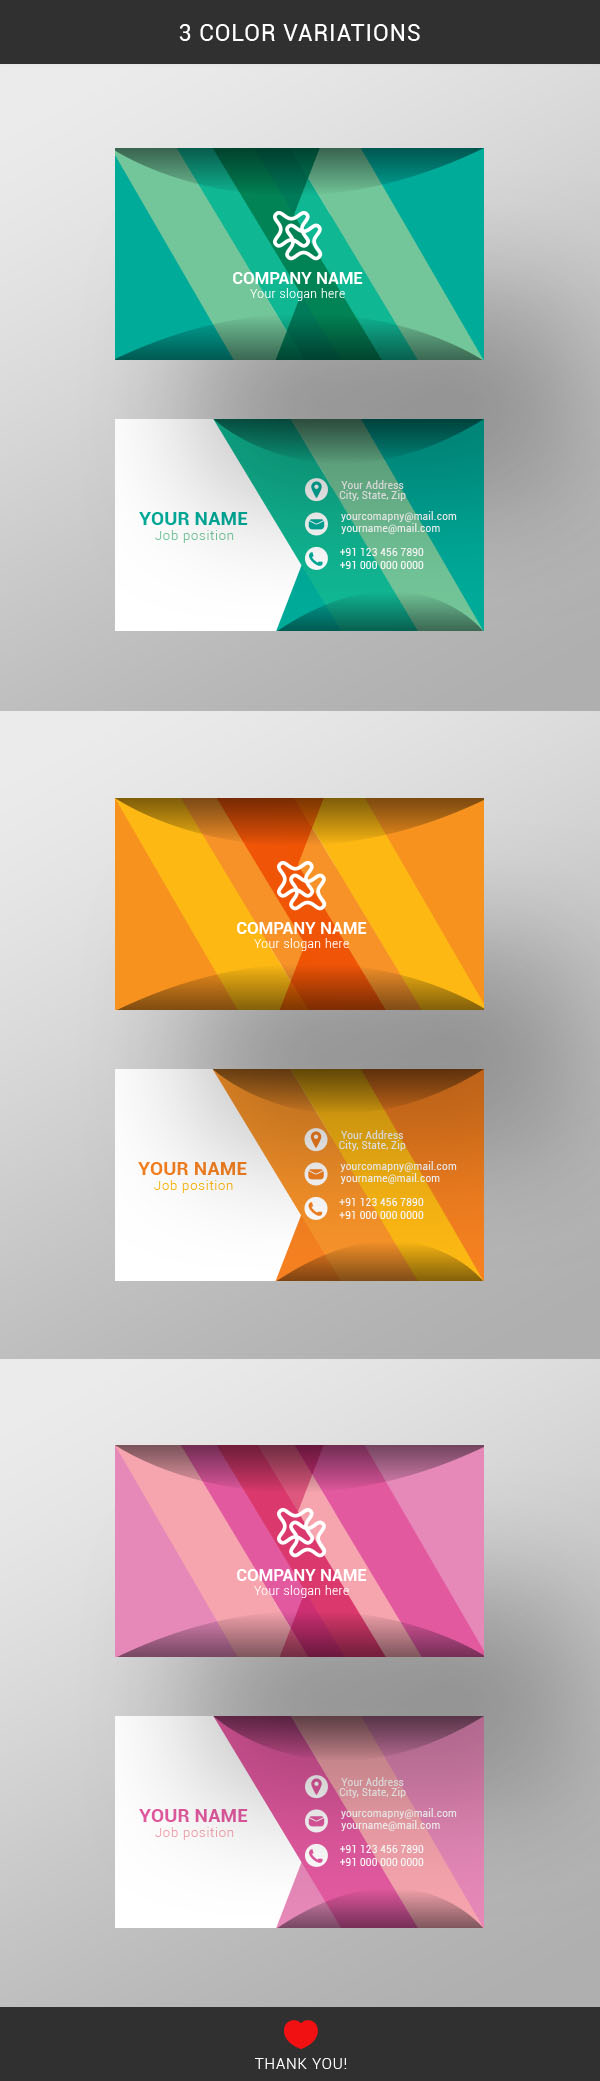 Vector modern business card template free download wisxi abstract business card design business creative graphic layout template wajeb Image collections